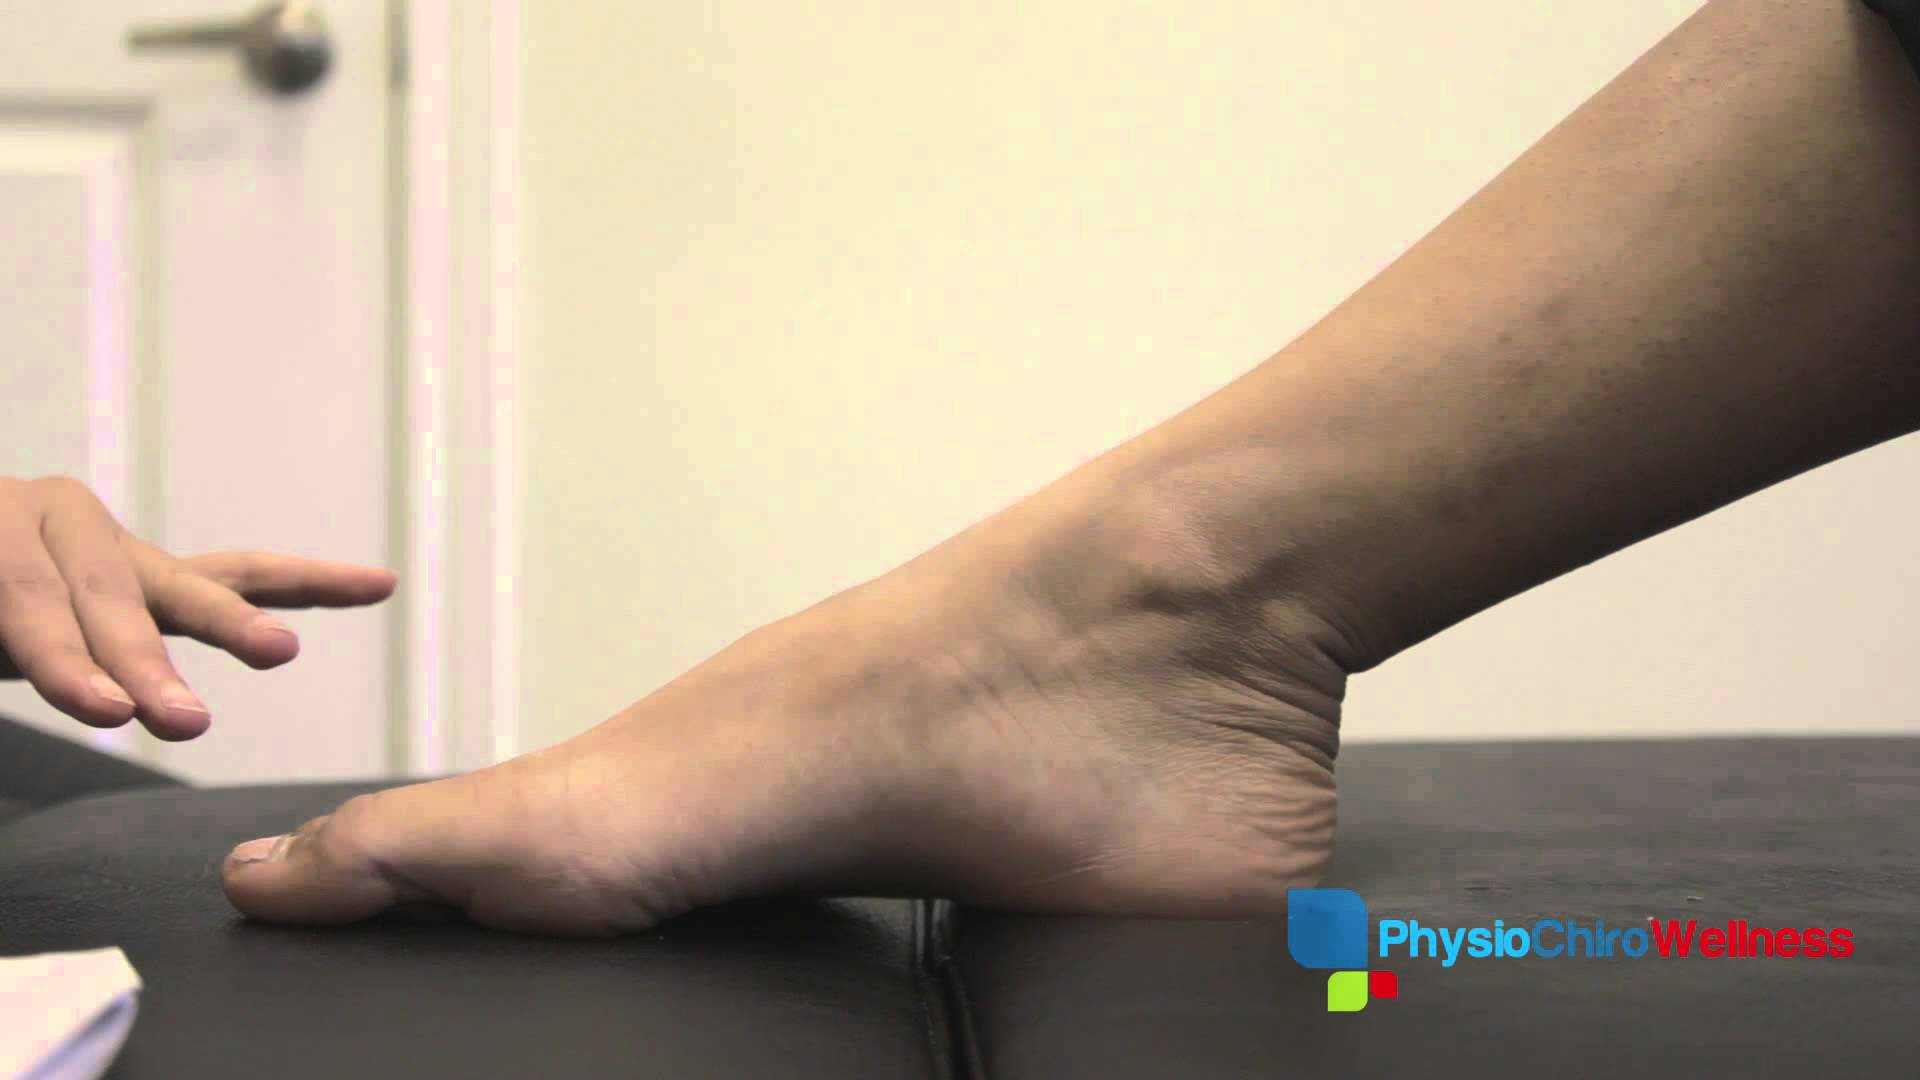 Acupuncture Treatment for Foot Arthritis PhysioChiroWellness